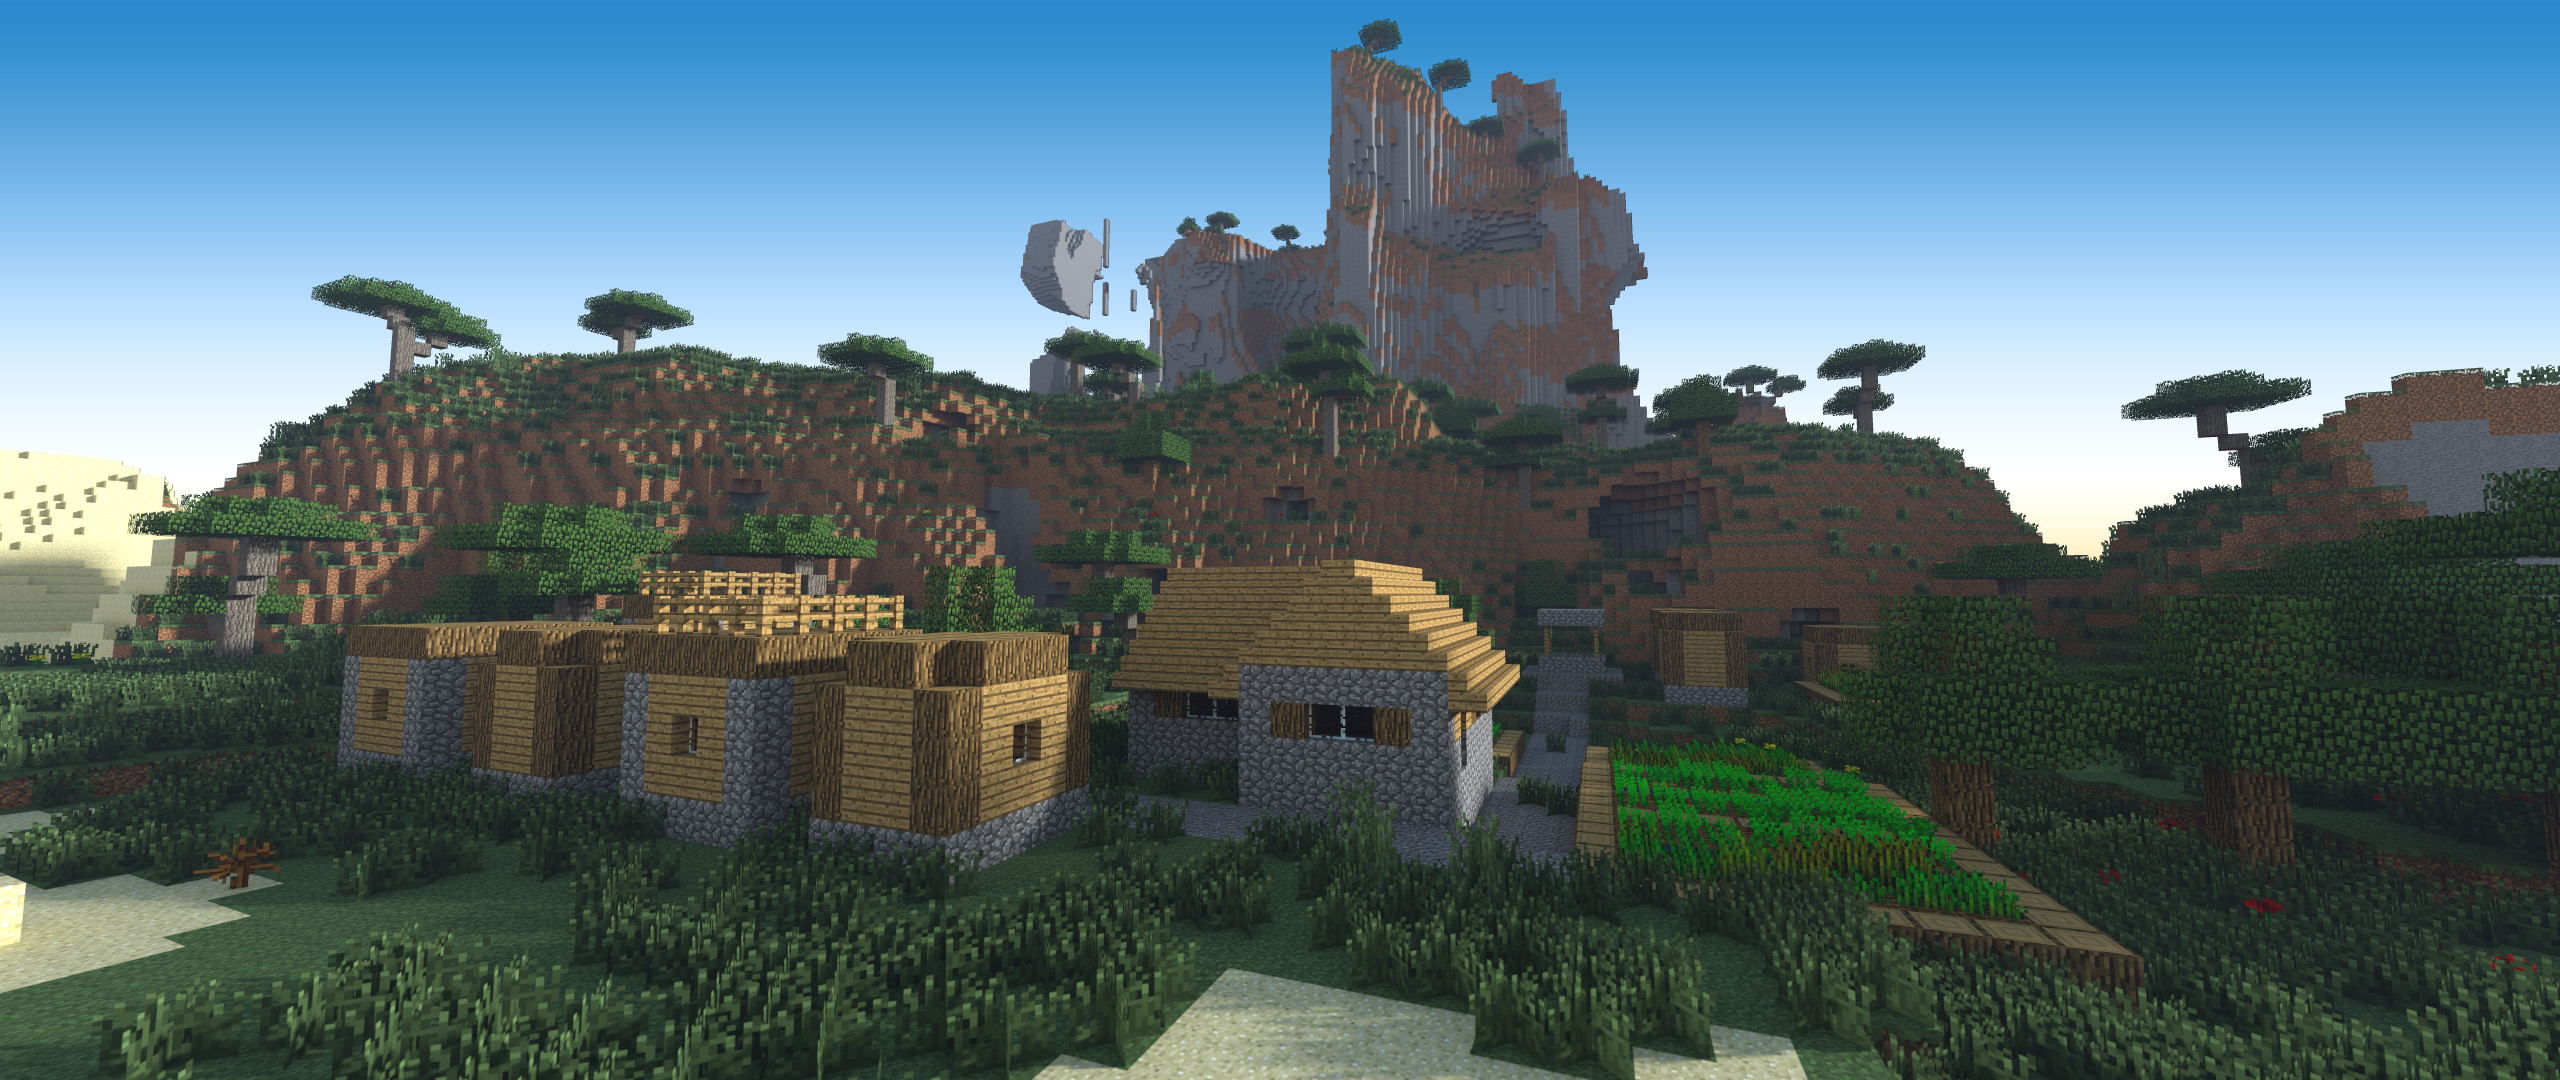 Must see Wallpaper Minecraft Abstract - 992914-cool-epic-minecraft-background-2560x1080  Trends_3216100.jpg